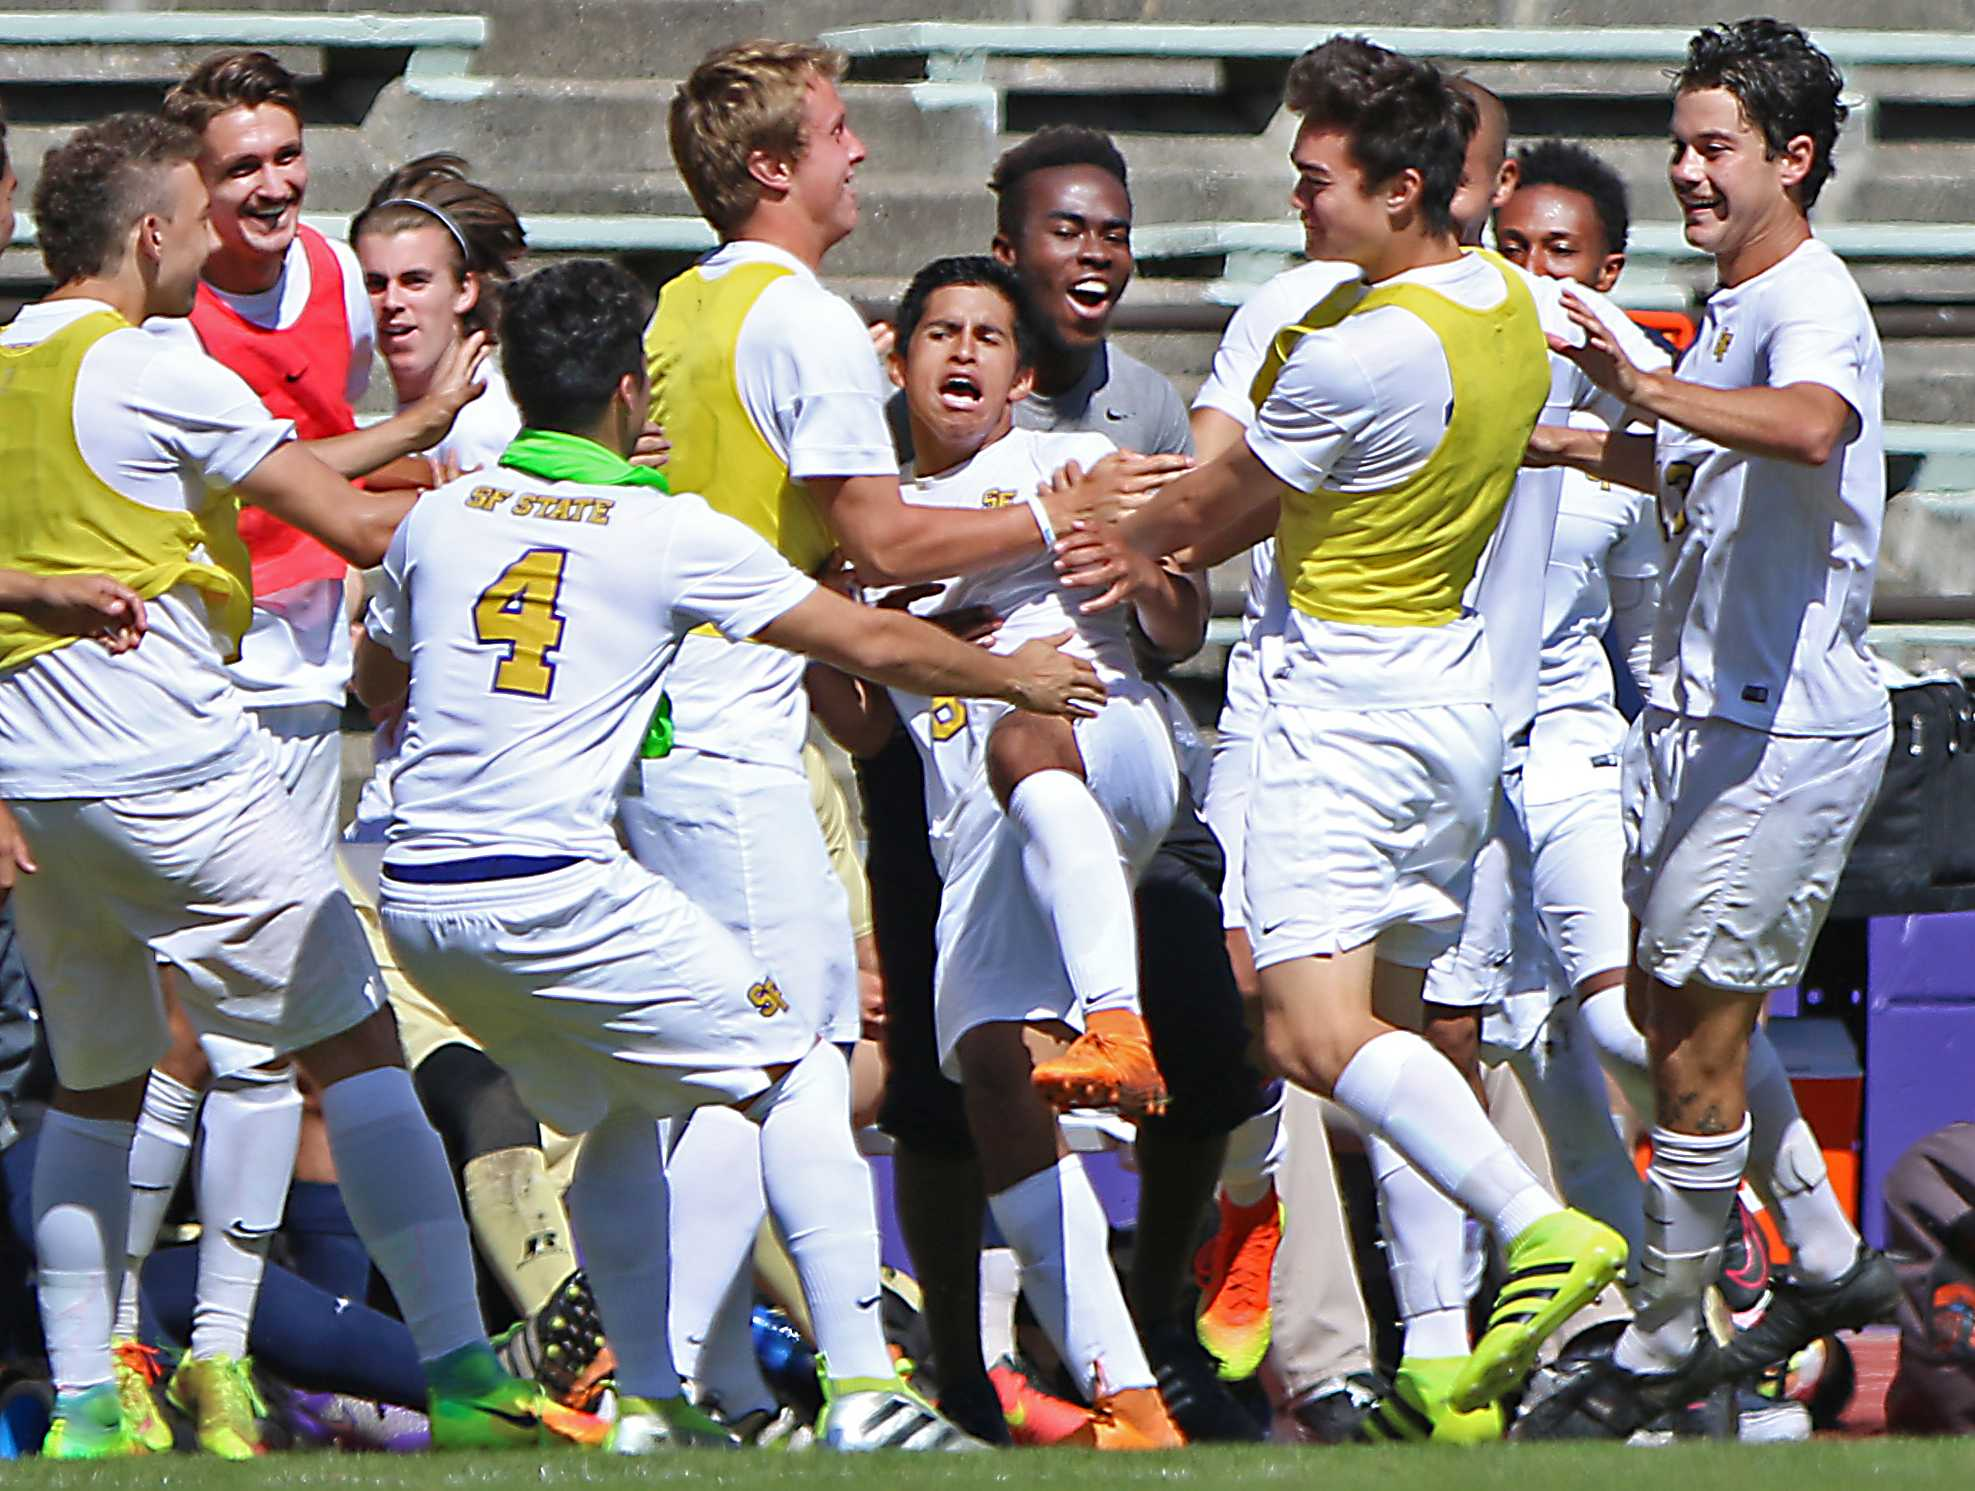 SF State Gators' players celebrate freshman forward Richard Leon's (8) golden goal during their 3-2 overtime win over Cal State Monterey Bay at Cox Stadium on Wednesday, Sept. 14, 2016. (George Morin/Xpress)